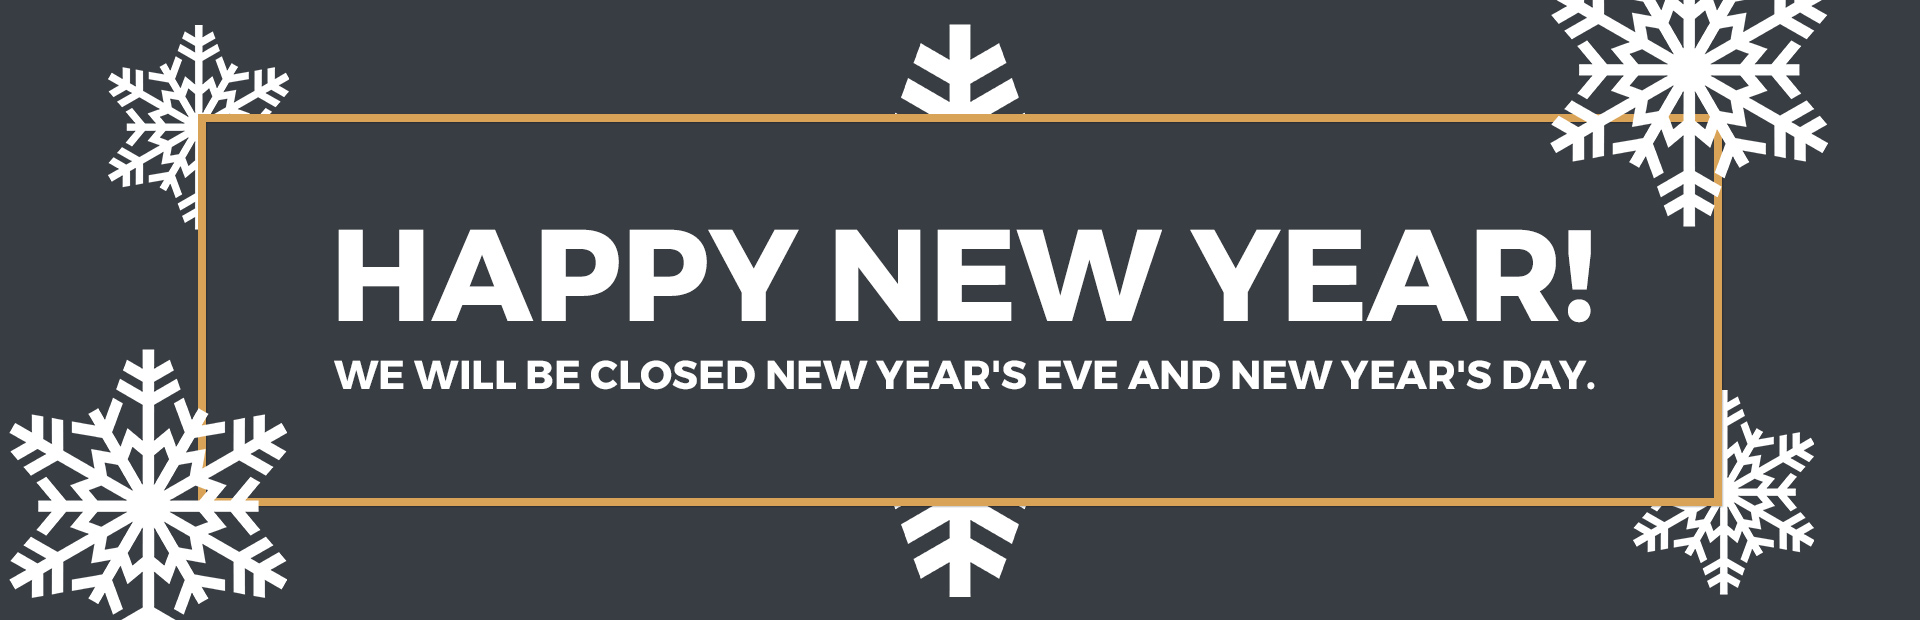 Happy New Year: We will be closed New Year's Eve and New Year's Day.